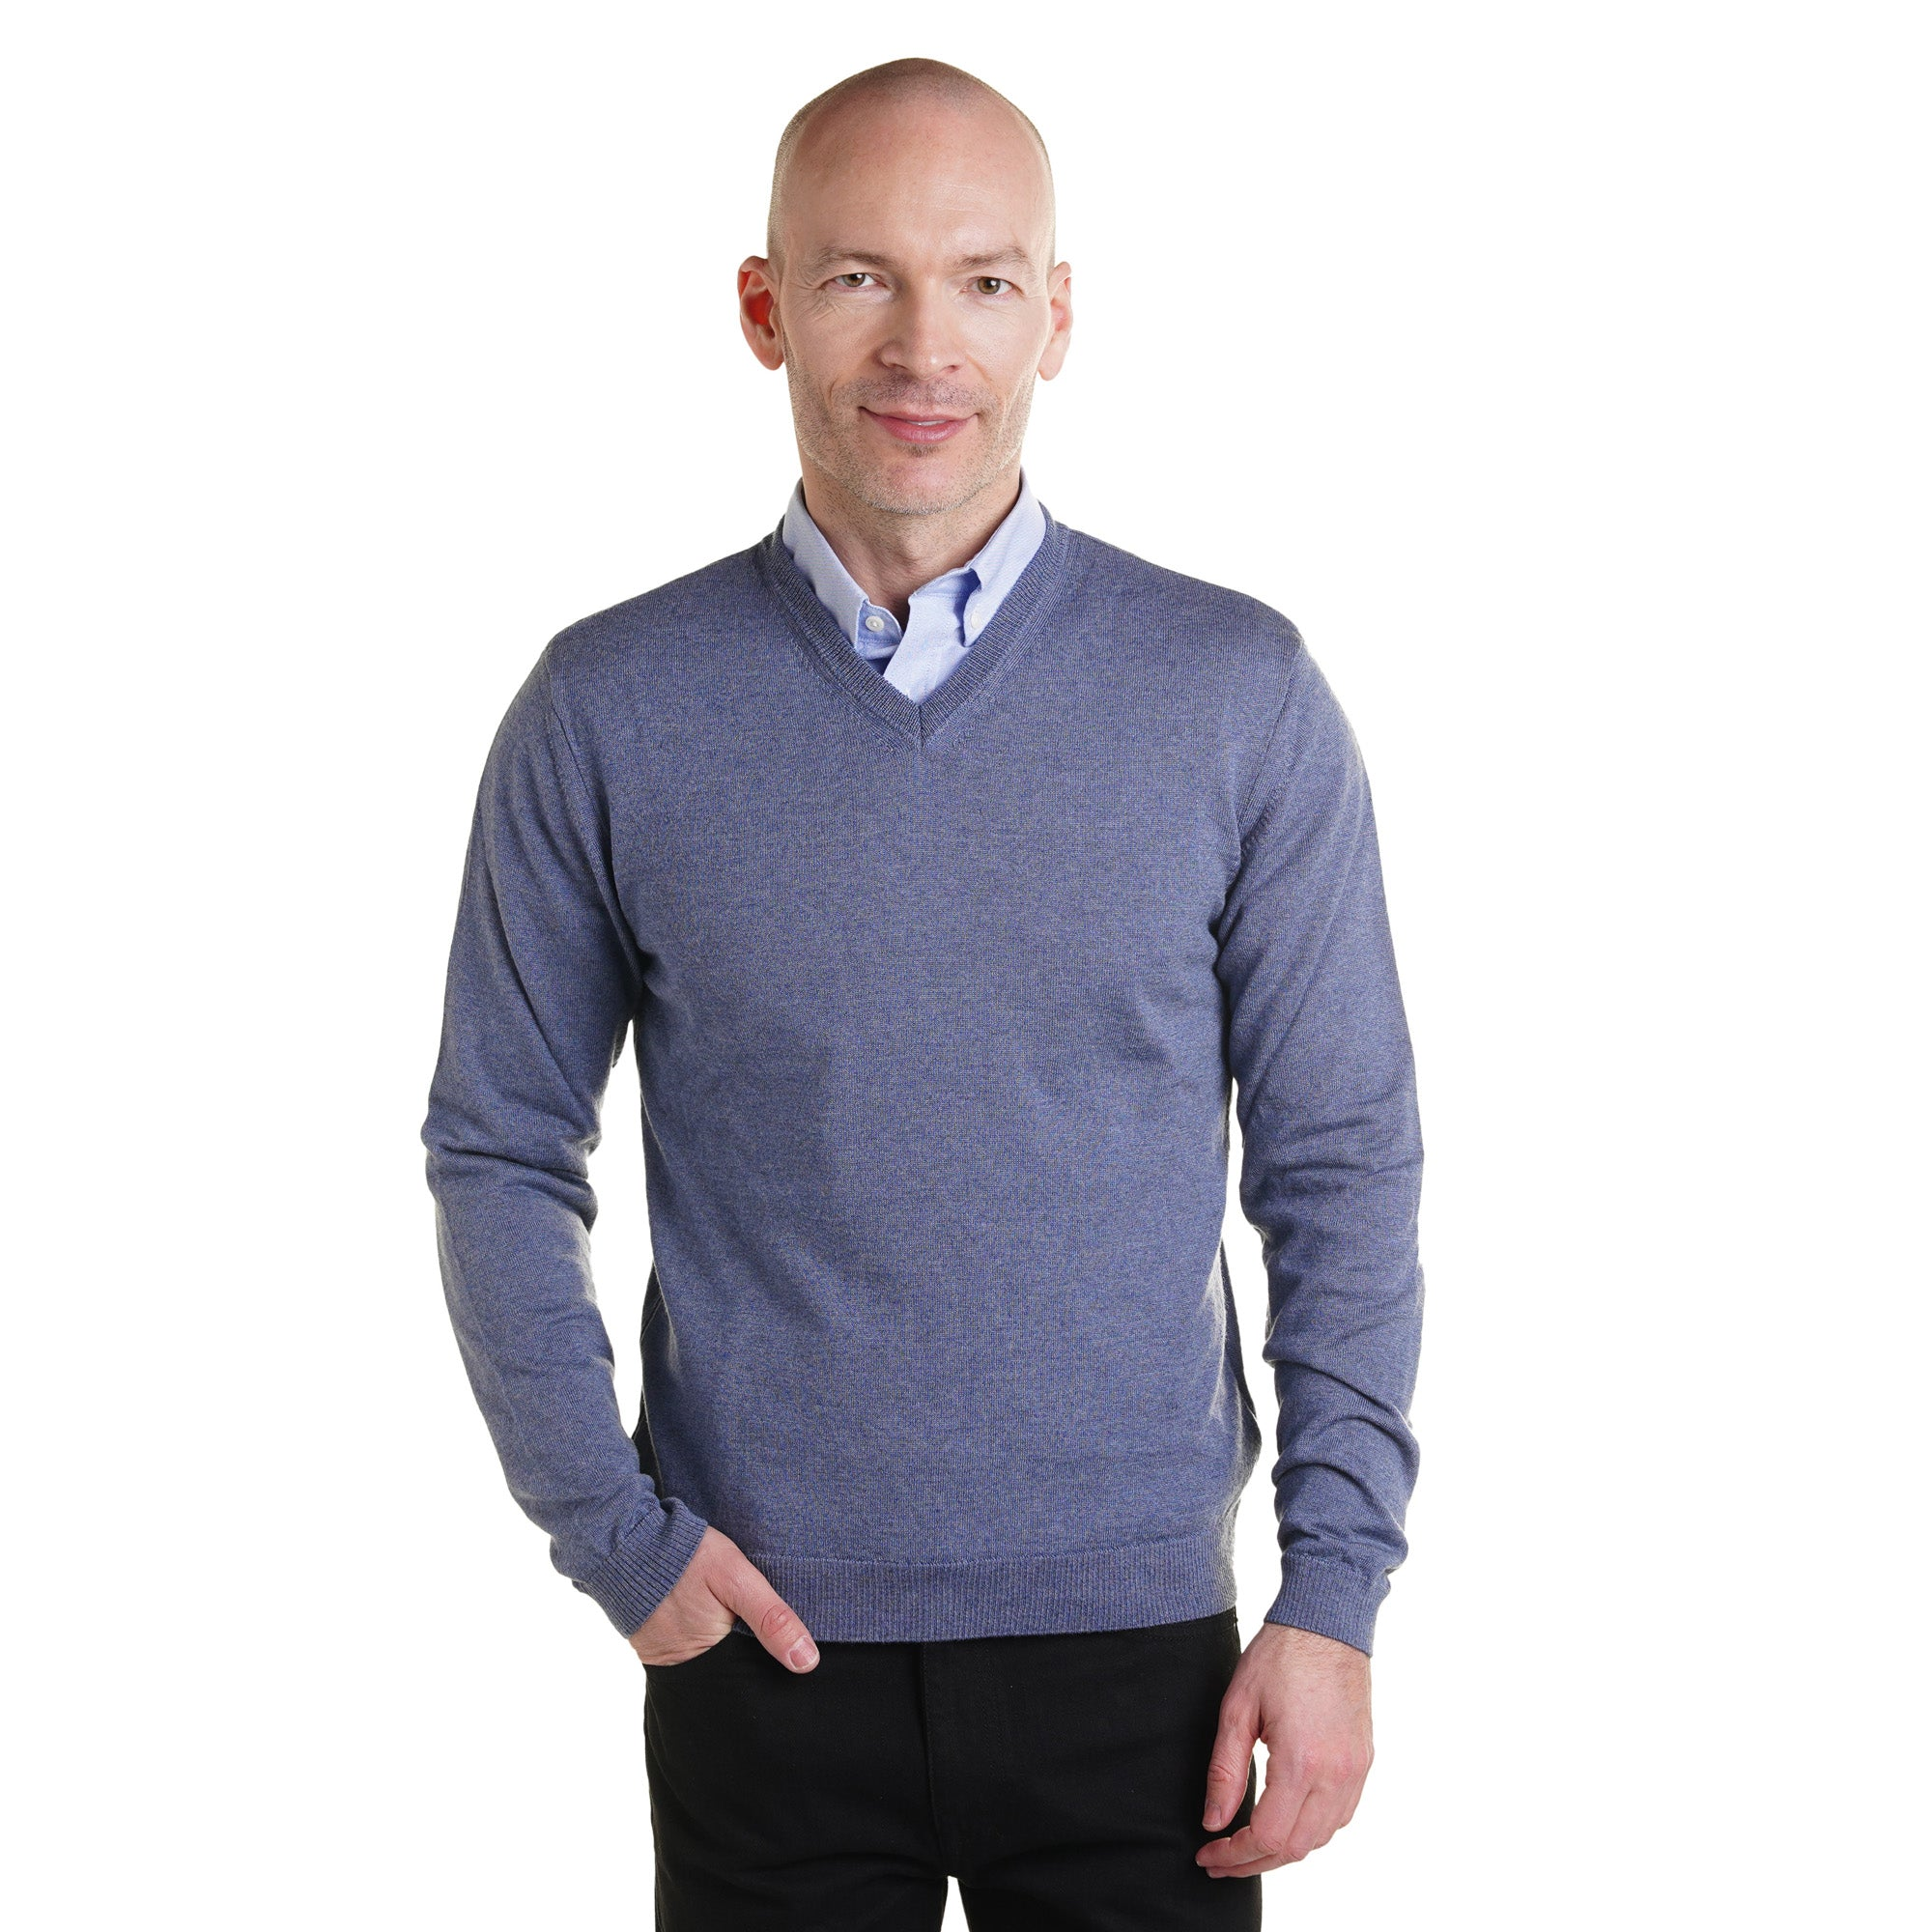 Zegna Merino Wool V Neck Sweaters - Slate Blue